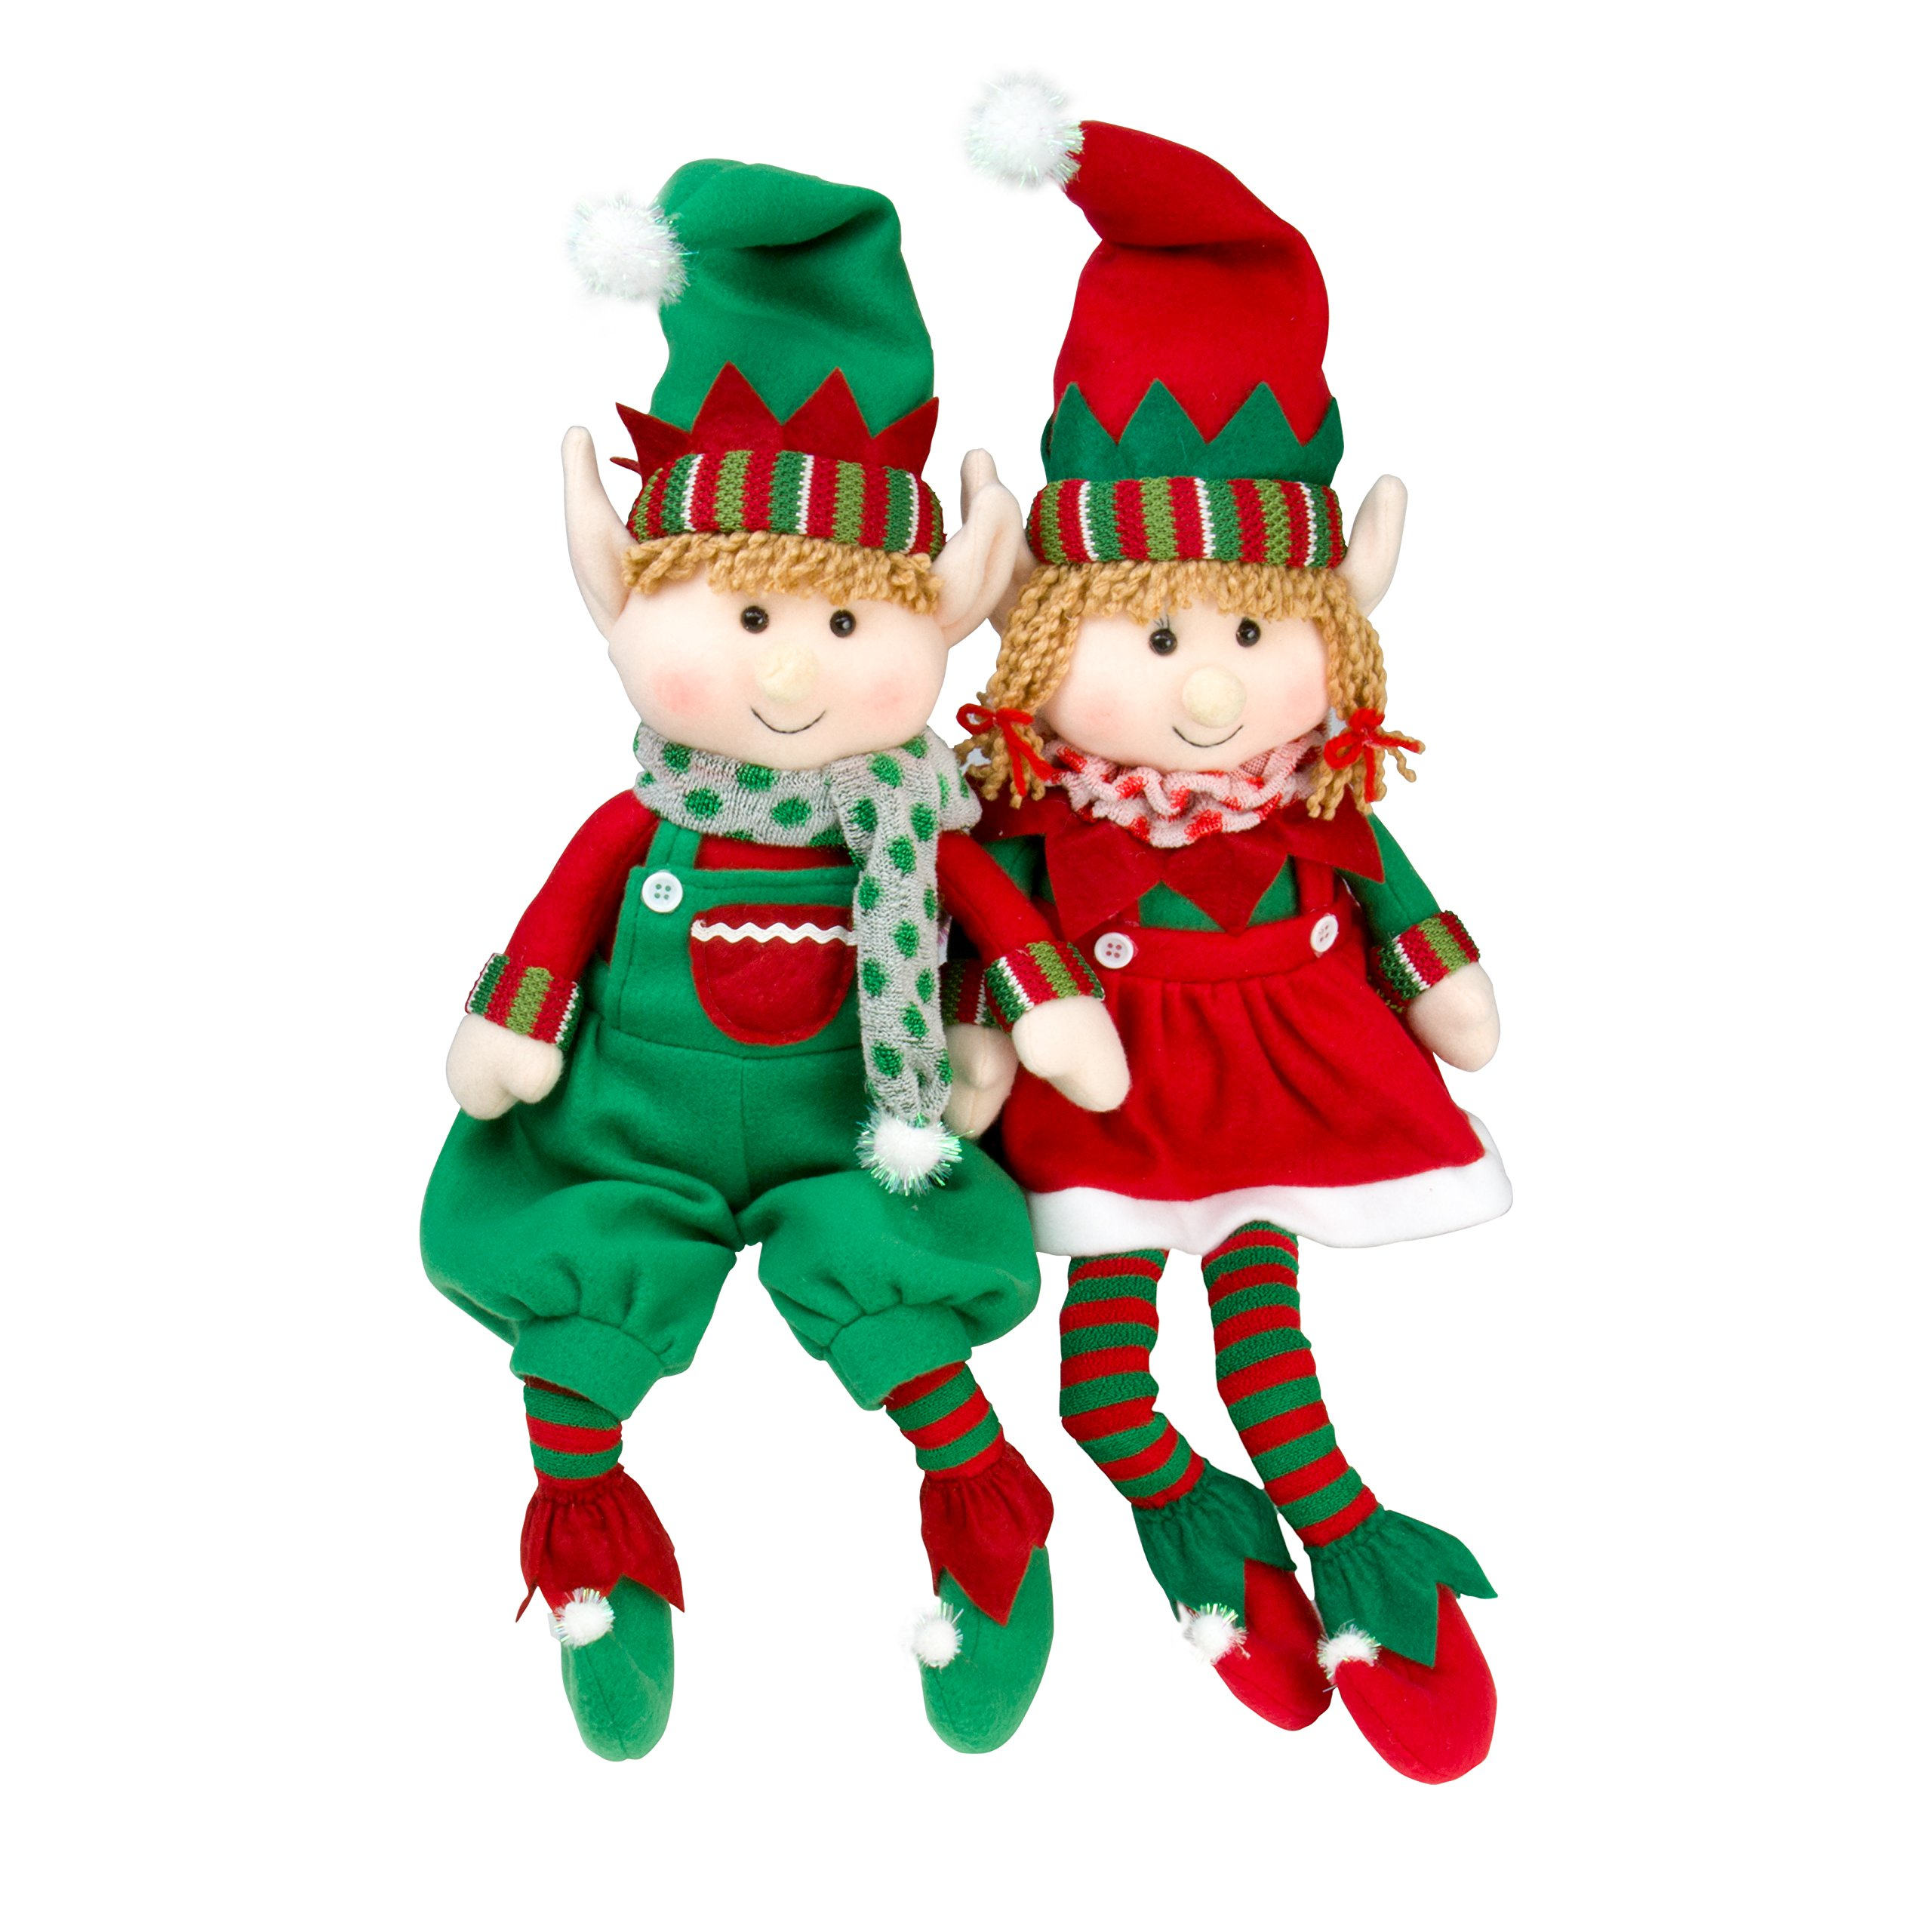 SCS Direct Elf Plush Christmas Stuffed Toys- 12'' Boy and Girl Elves (Set of 2) Holiday Plush Characters